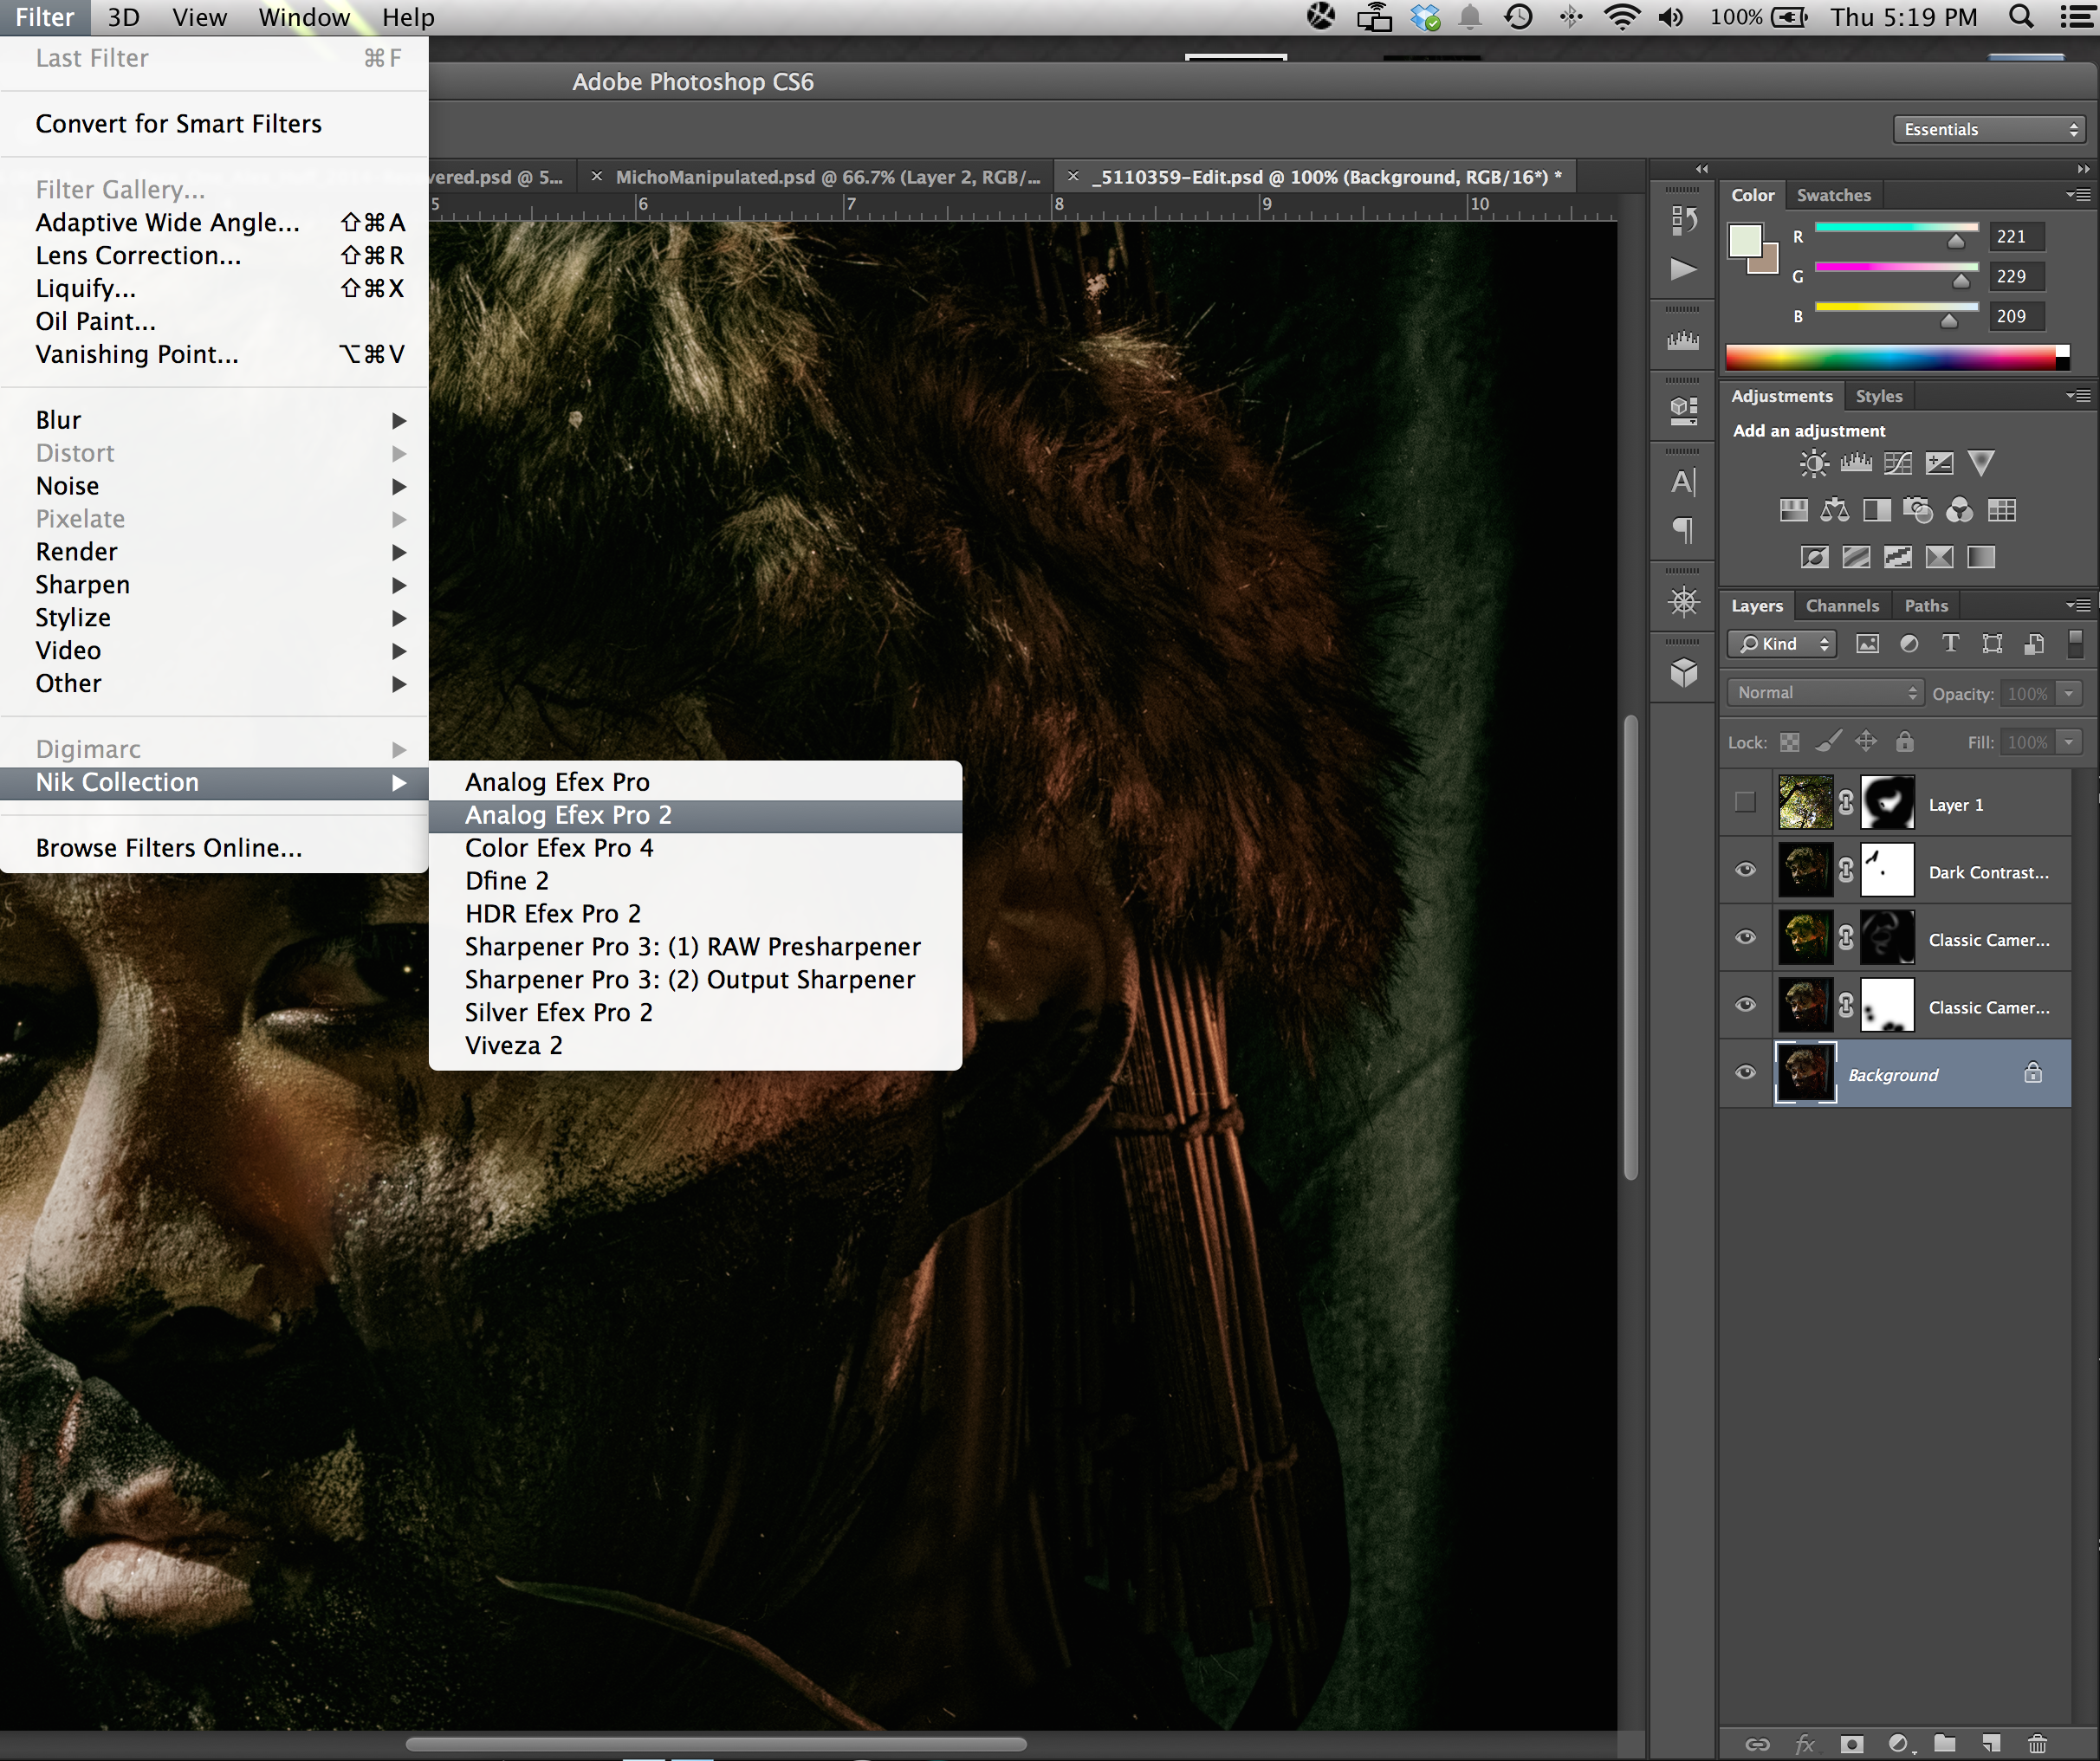 Open your image in Analog Efex Pro, as a plugin from within Photoshop